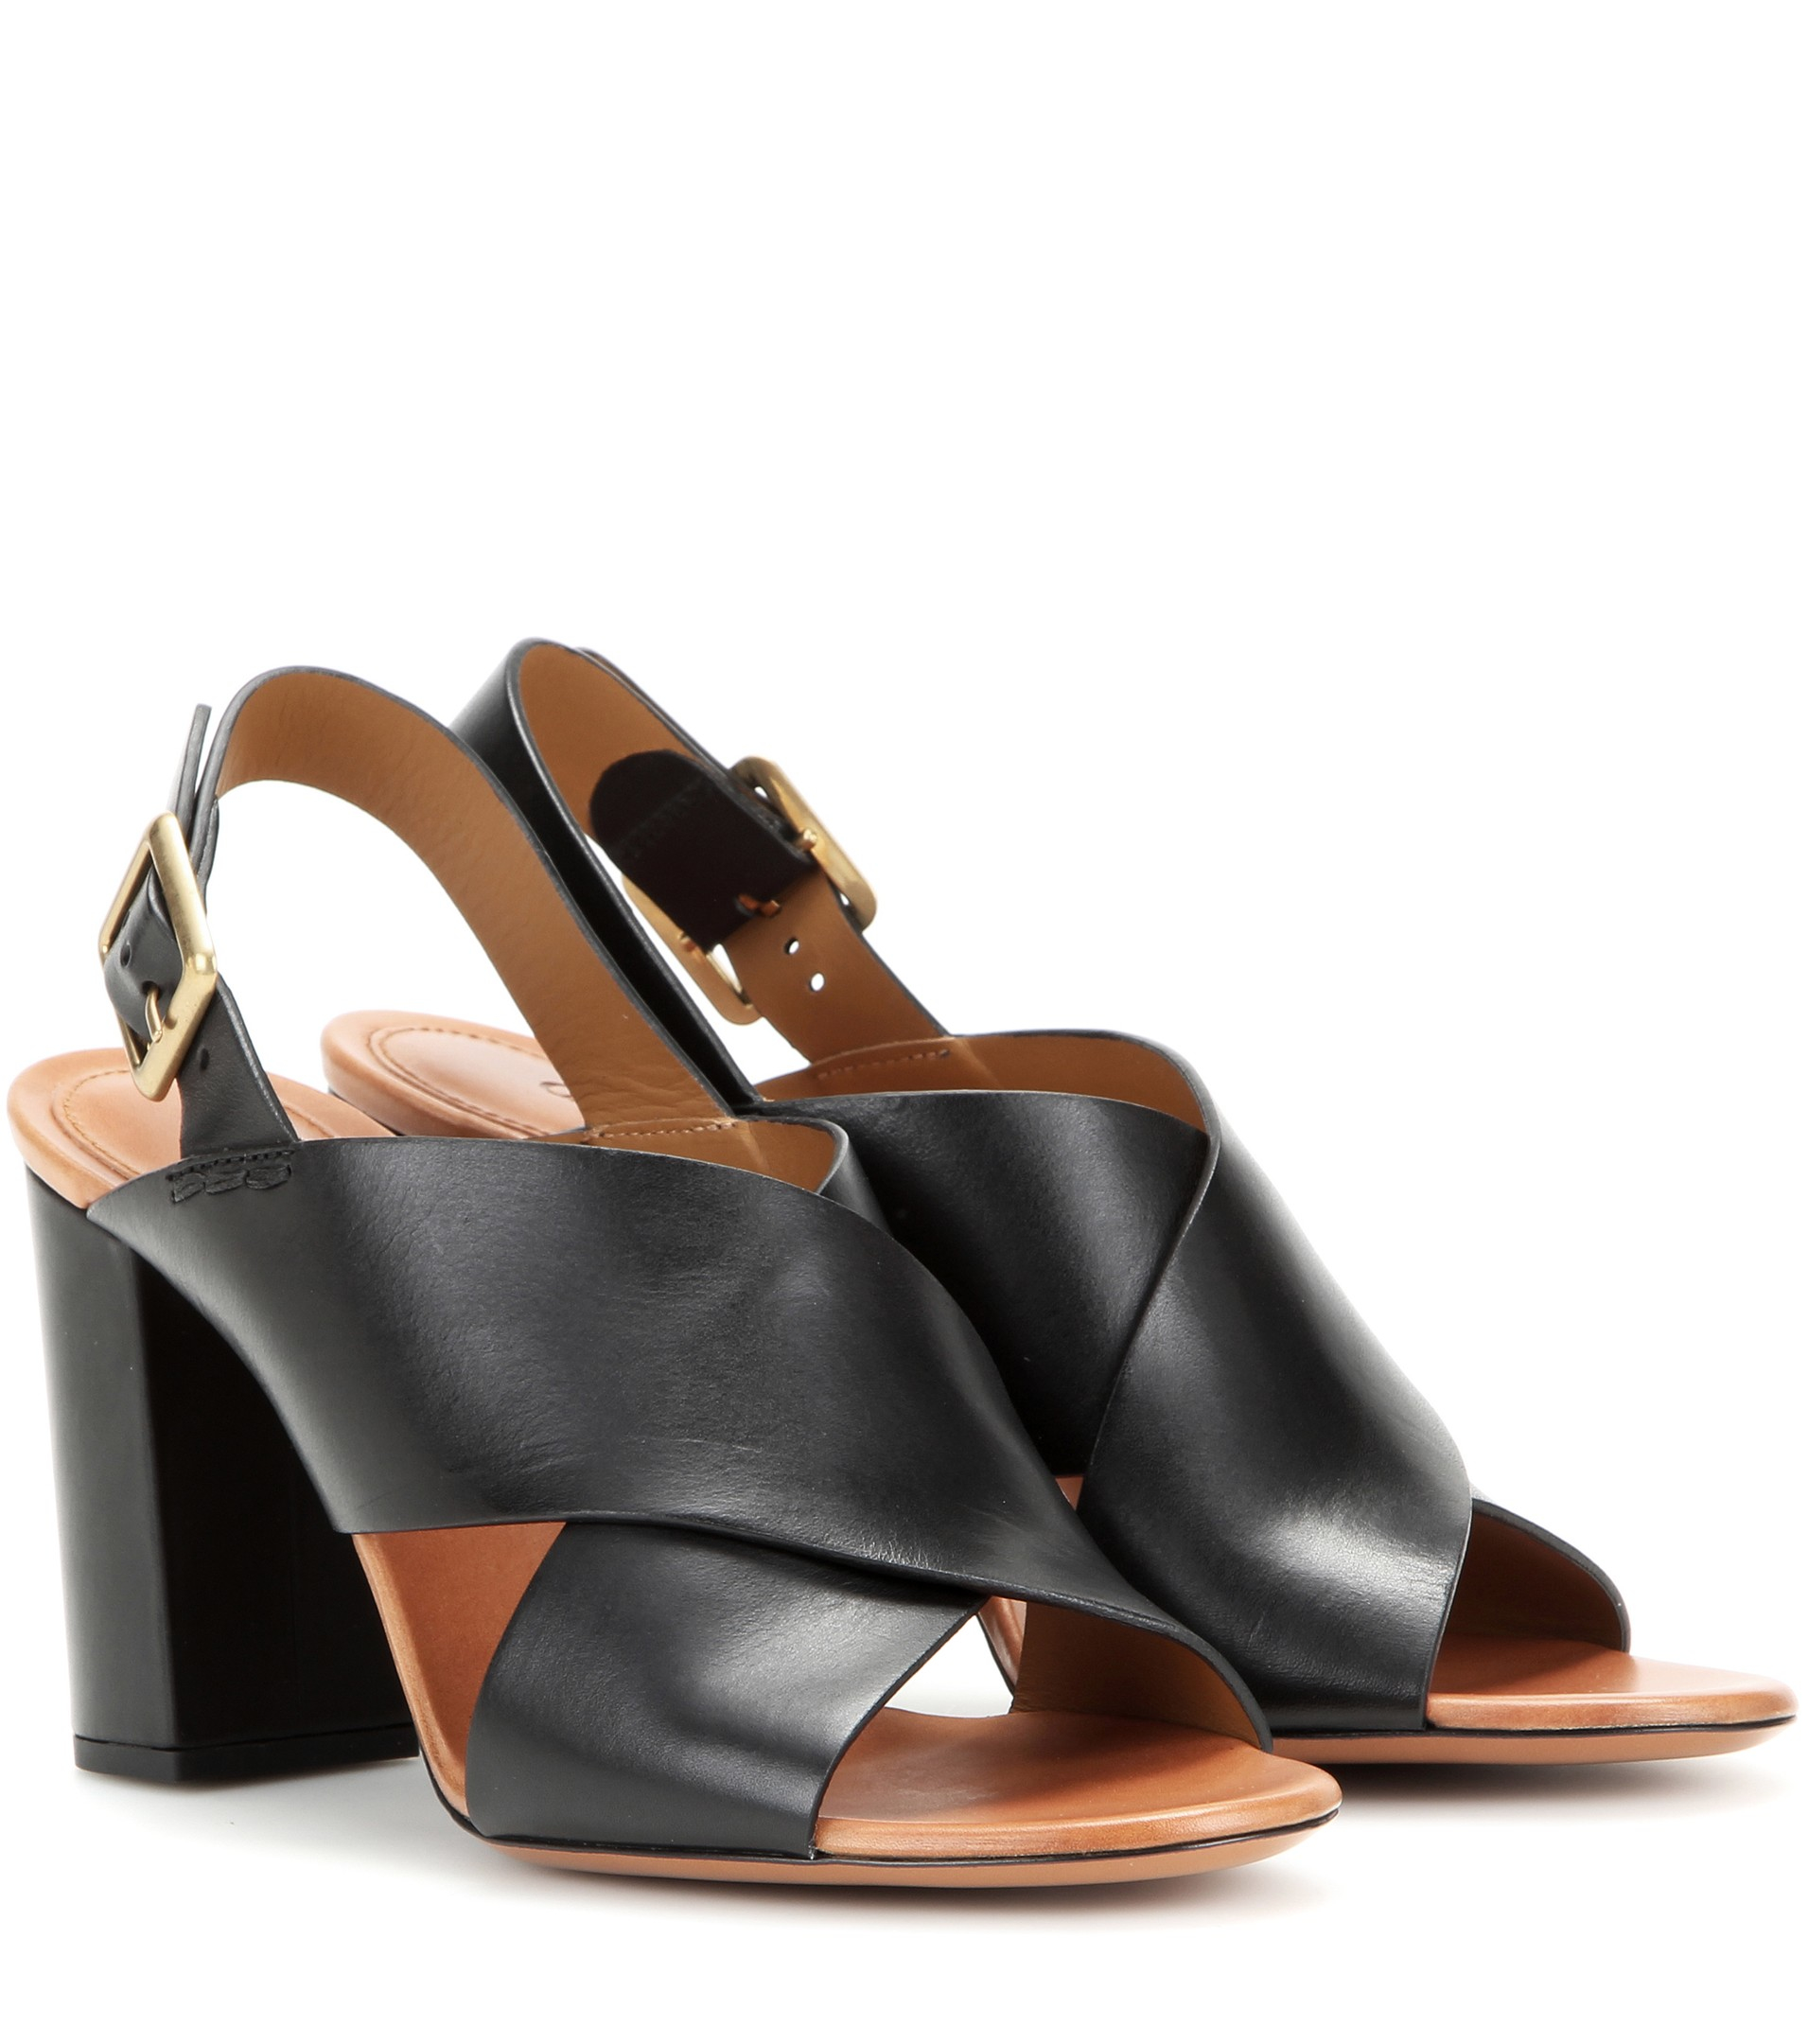 Chloé Leather Sandals in Black - Lyst